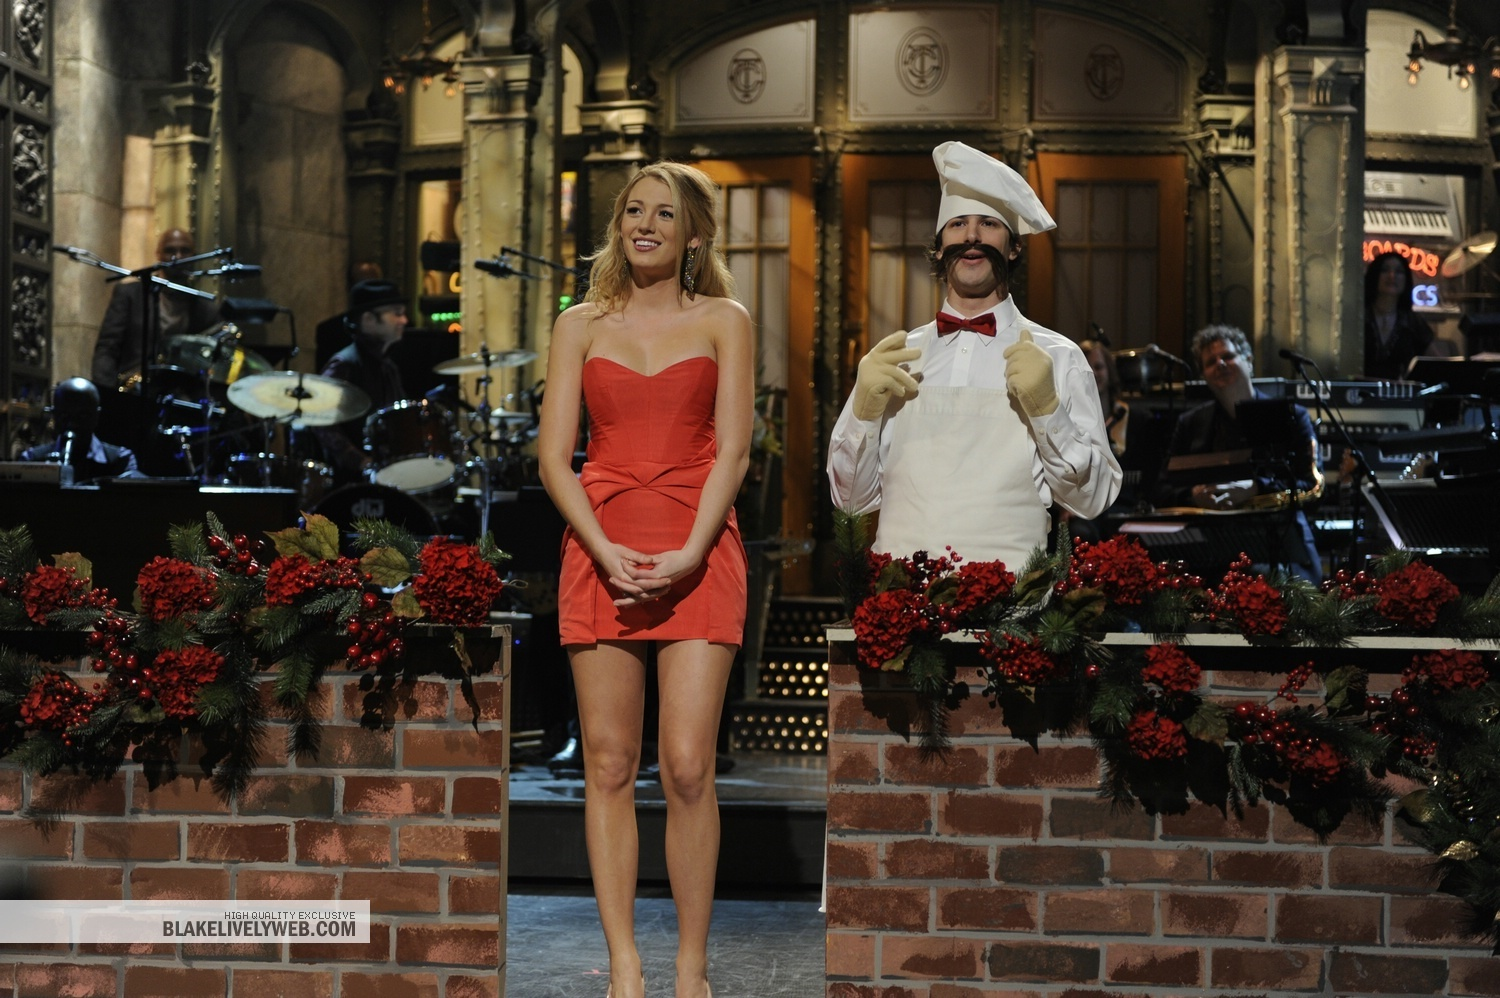 Blake Lively on SNL - blake-lively photo